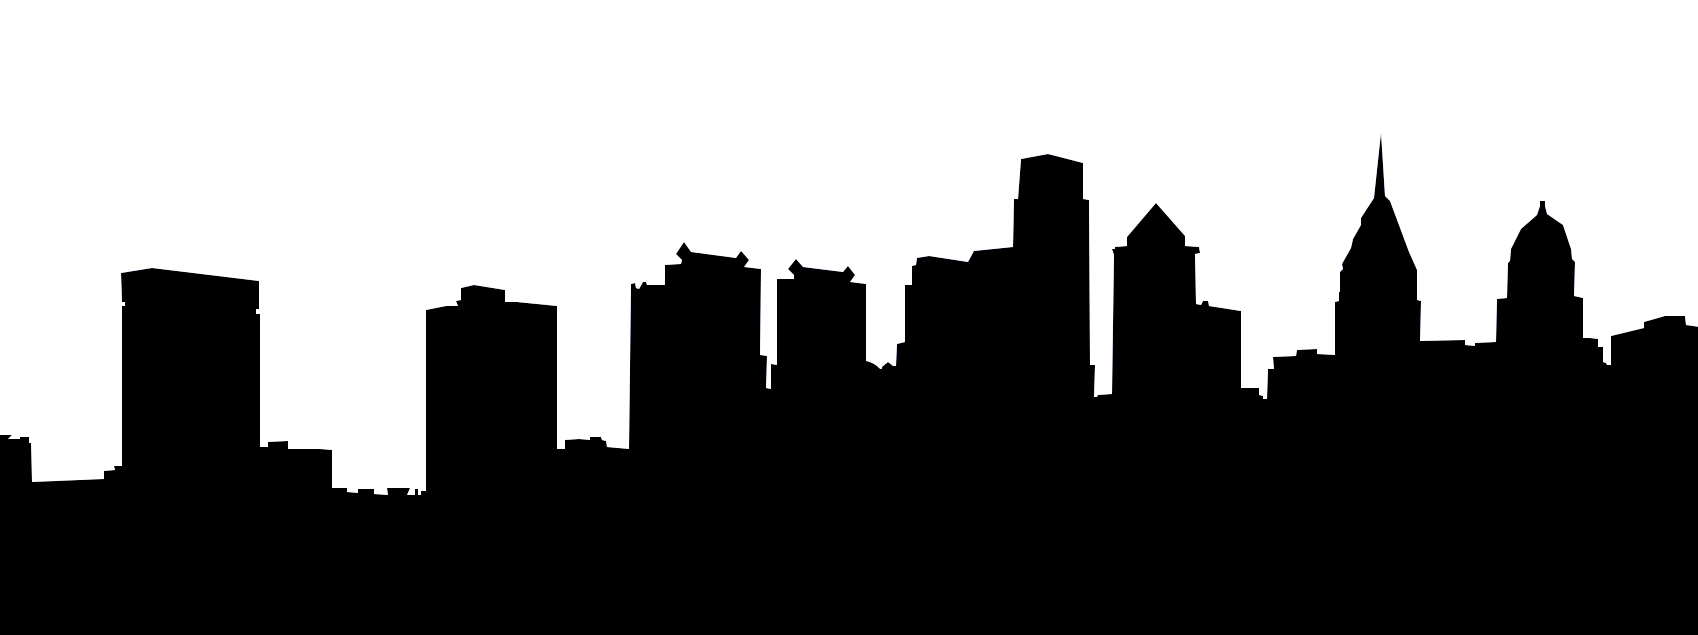 los angeles skyline silhouette at getdrawings com free for